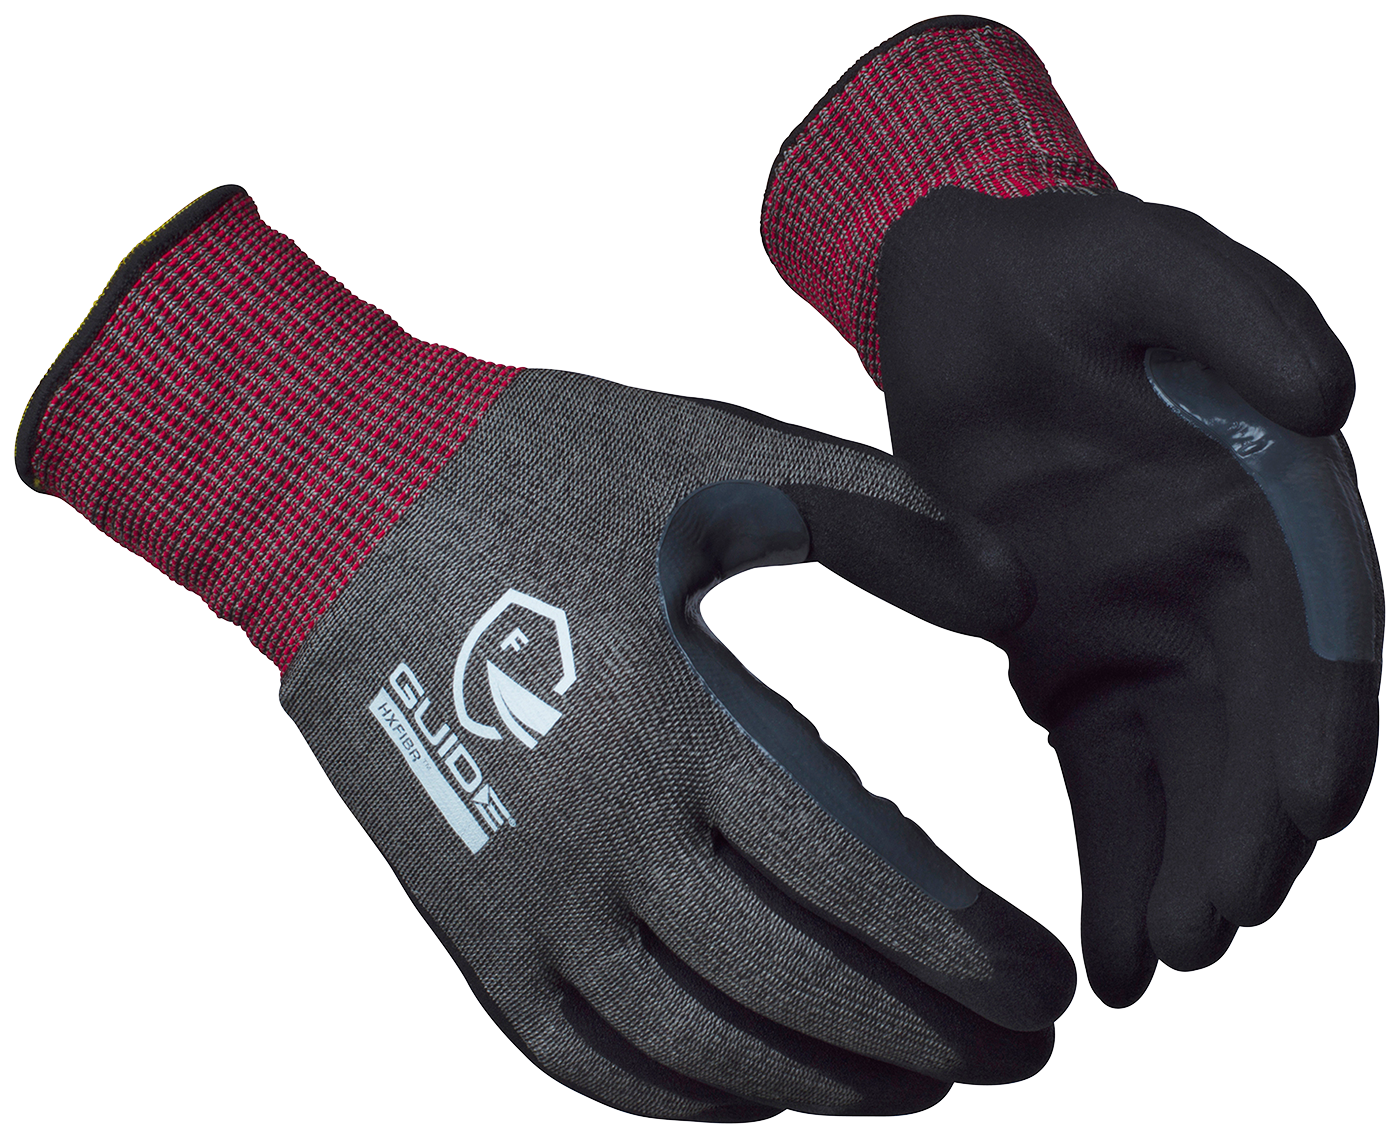 Cut protection glove GUIDE 6605